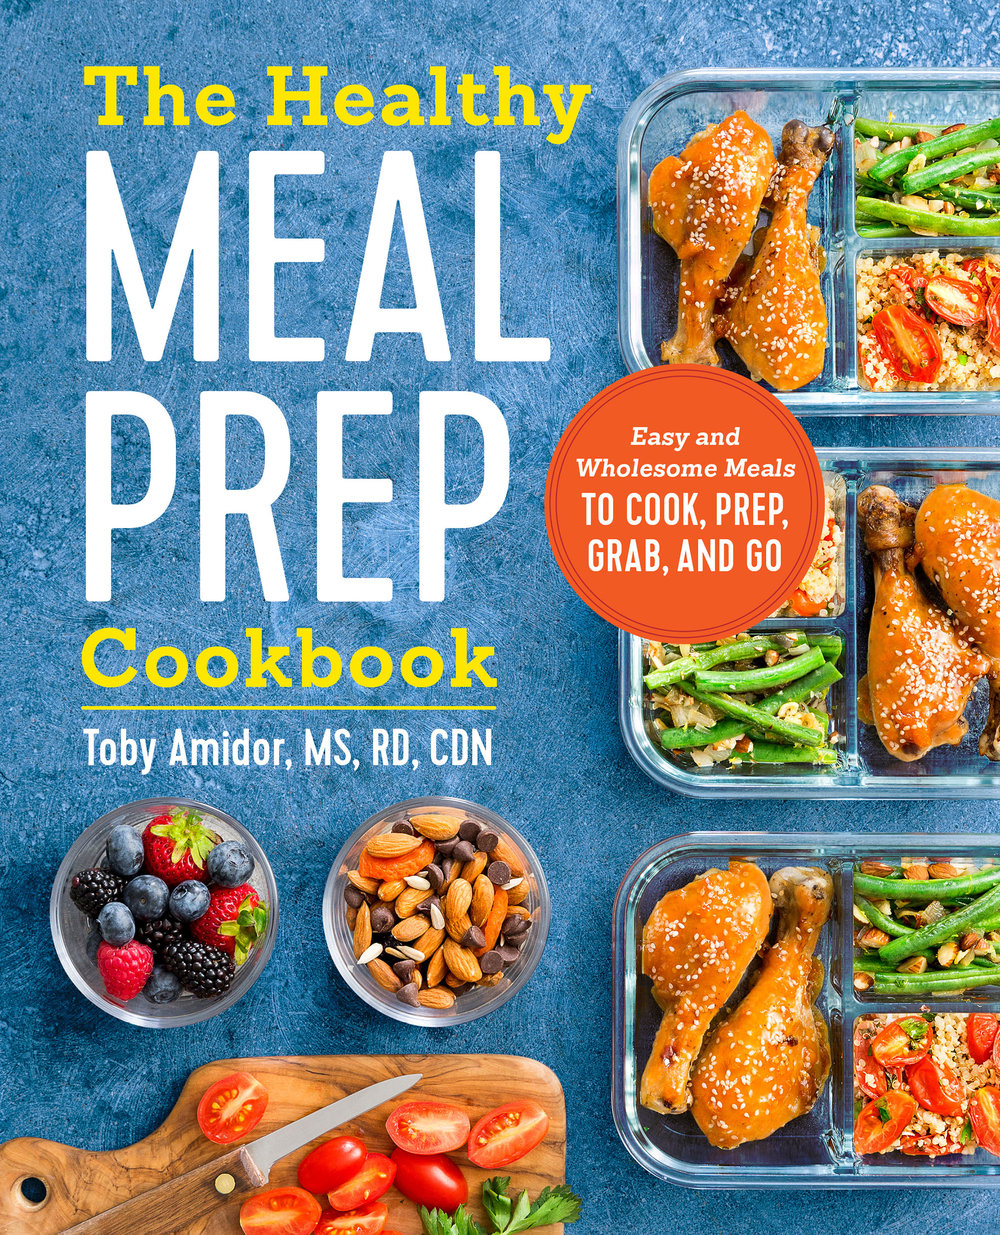 Copyright Toby Amidor, The Healthy Meal Prep Cookbook: Easy and Wholesome Meals to Cook, Pre, Grab, and Go, Rockridge Press, 2017. Photo courtesy of Nat & Cody Gantz